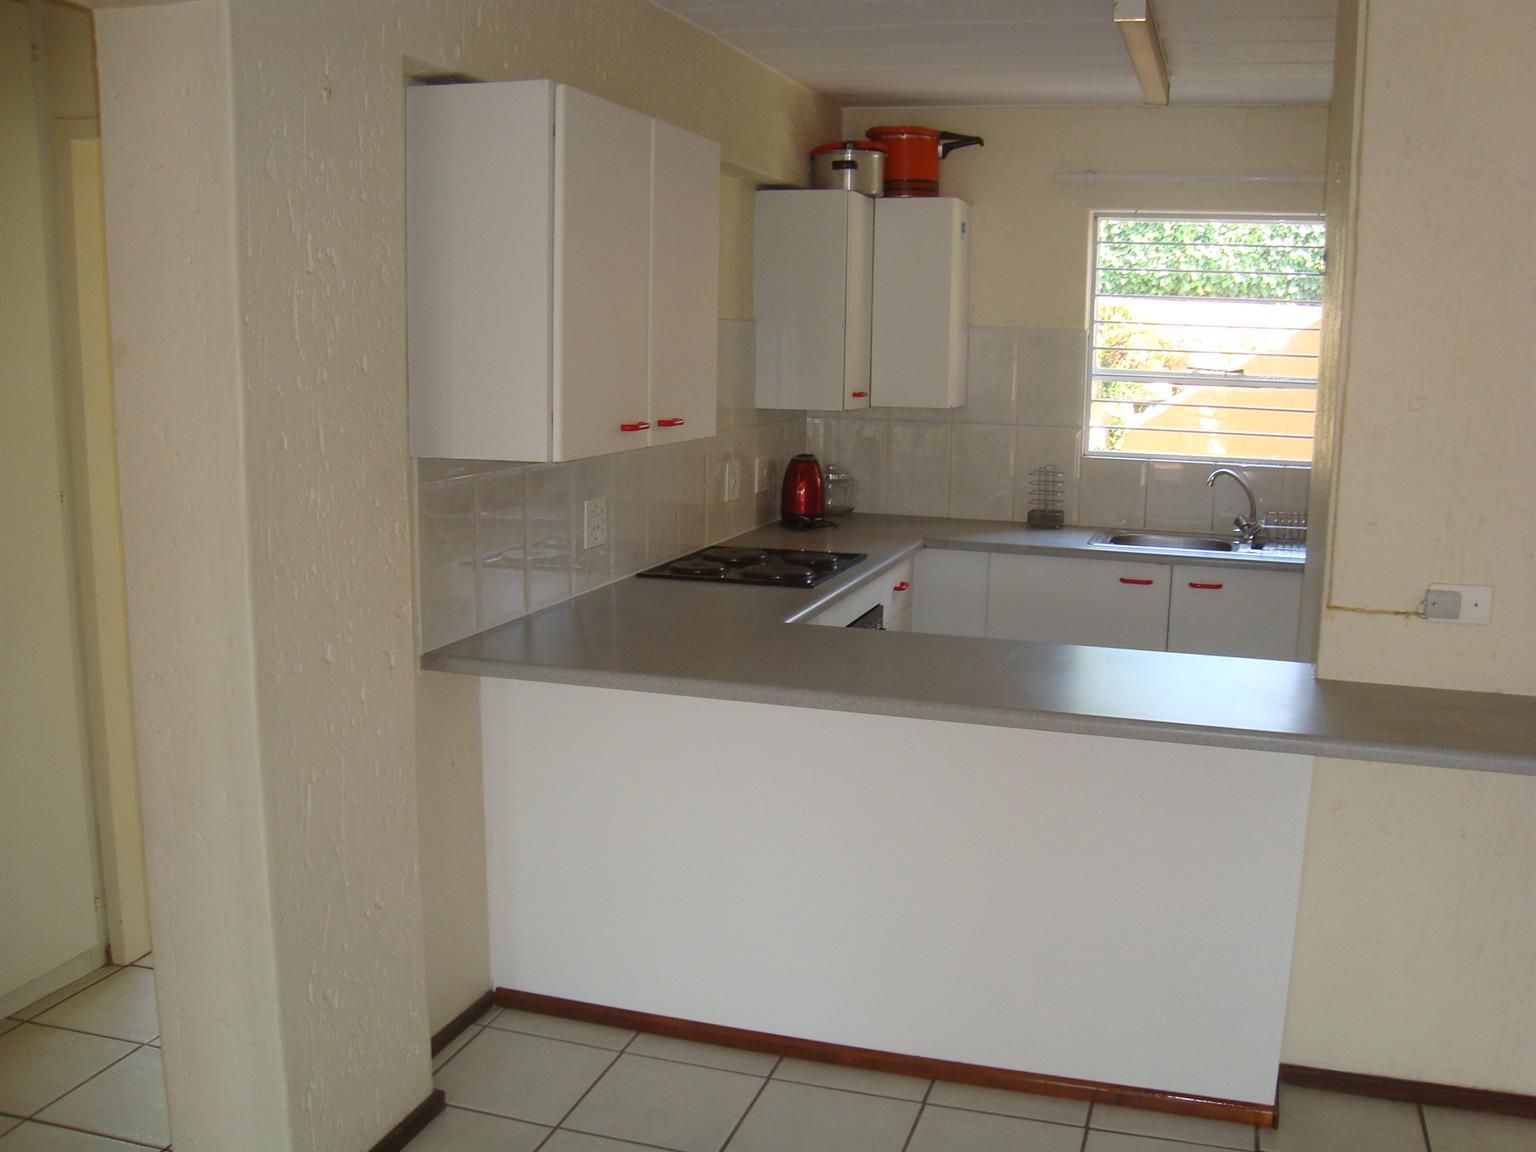 Townhouse For Sale - Vanderbijlpark SW5 - 3 bedroom.